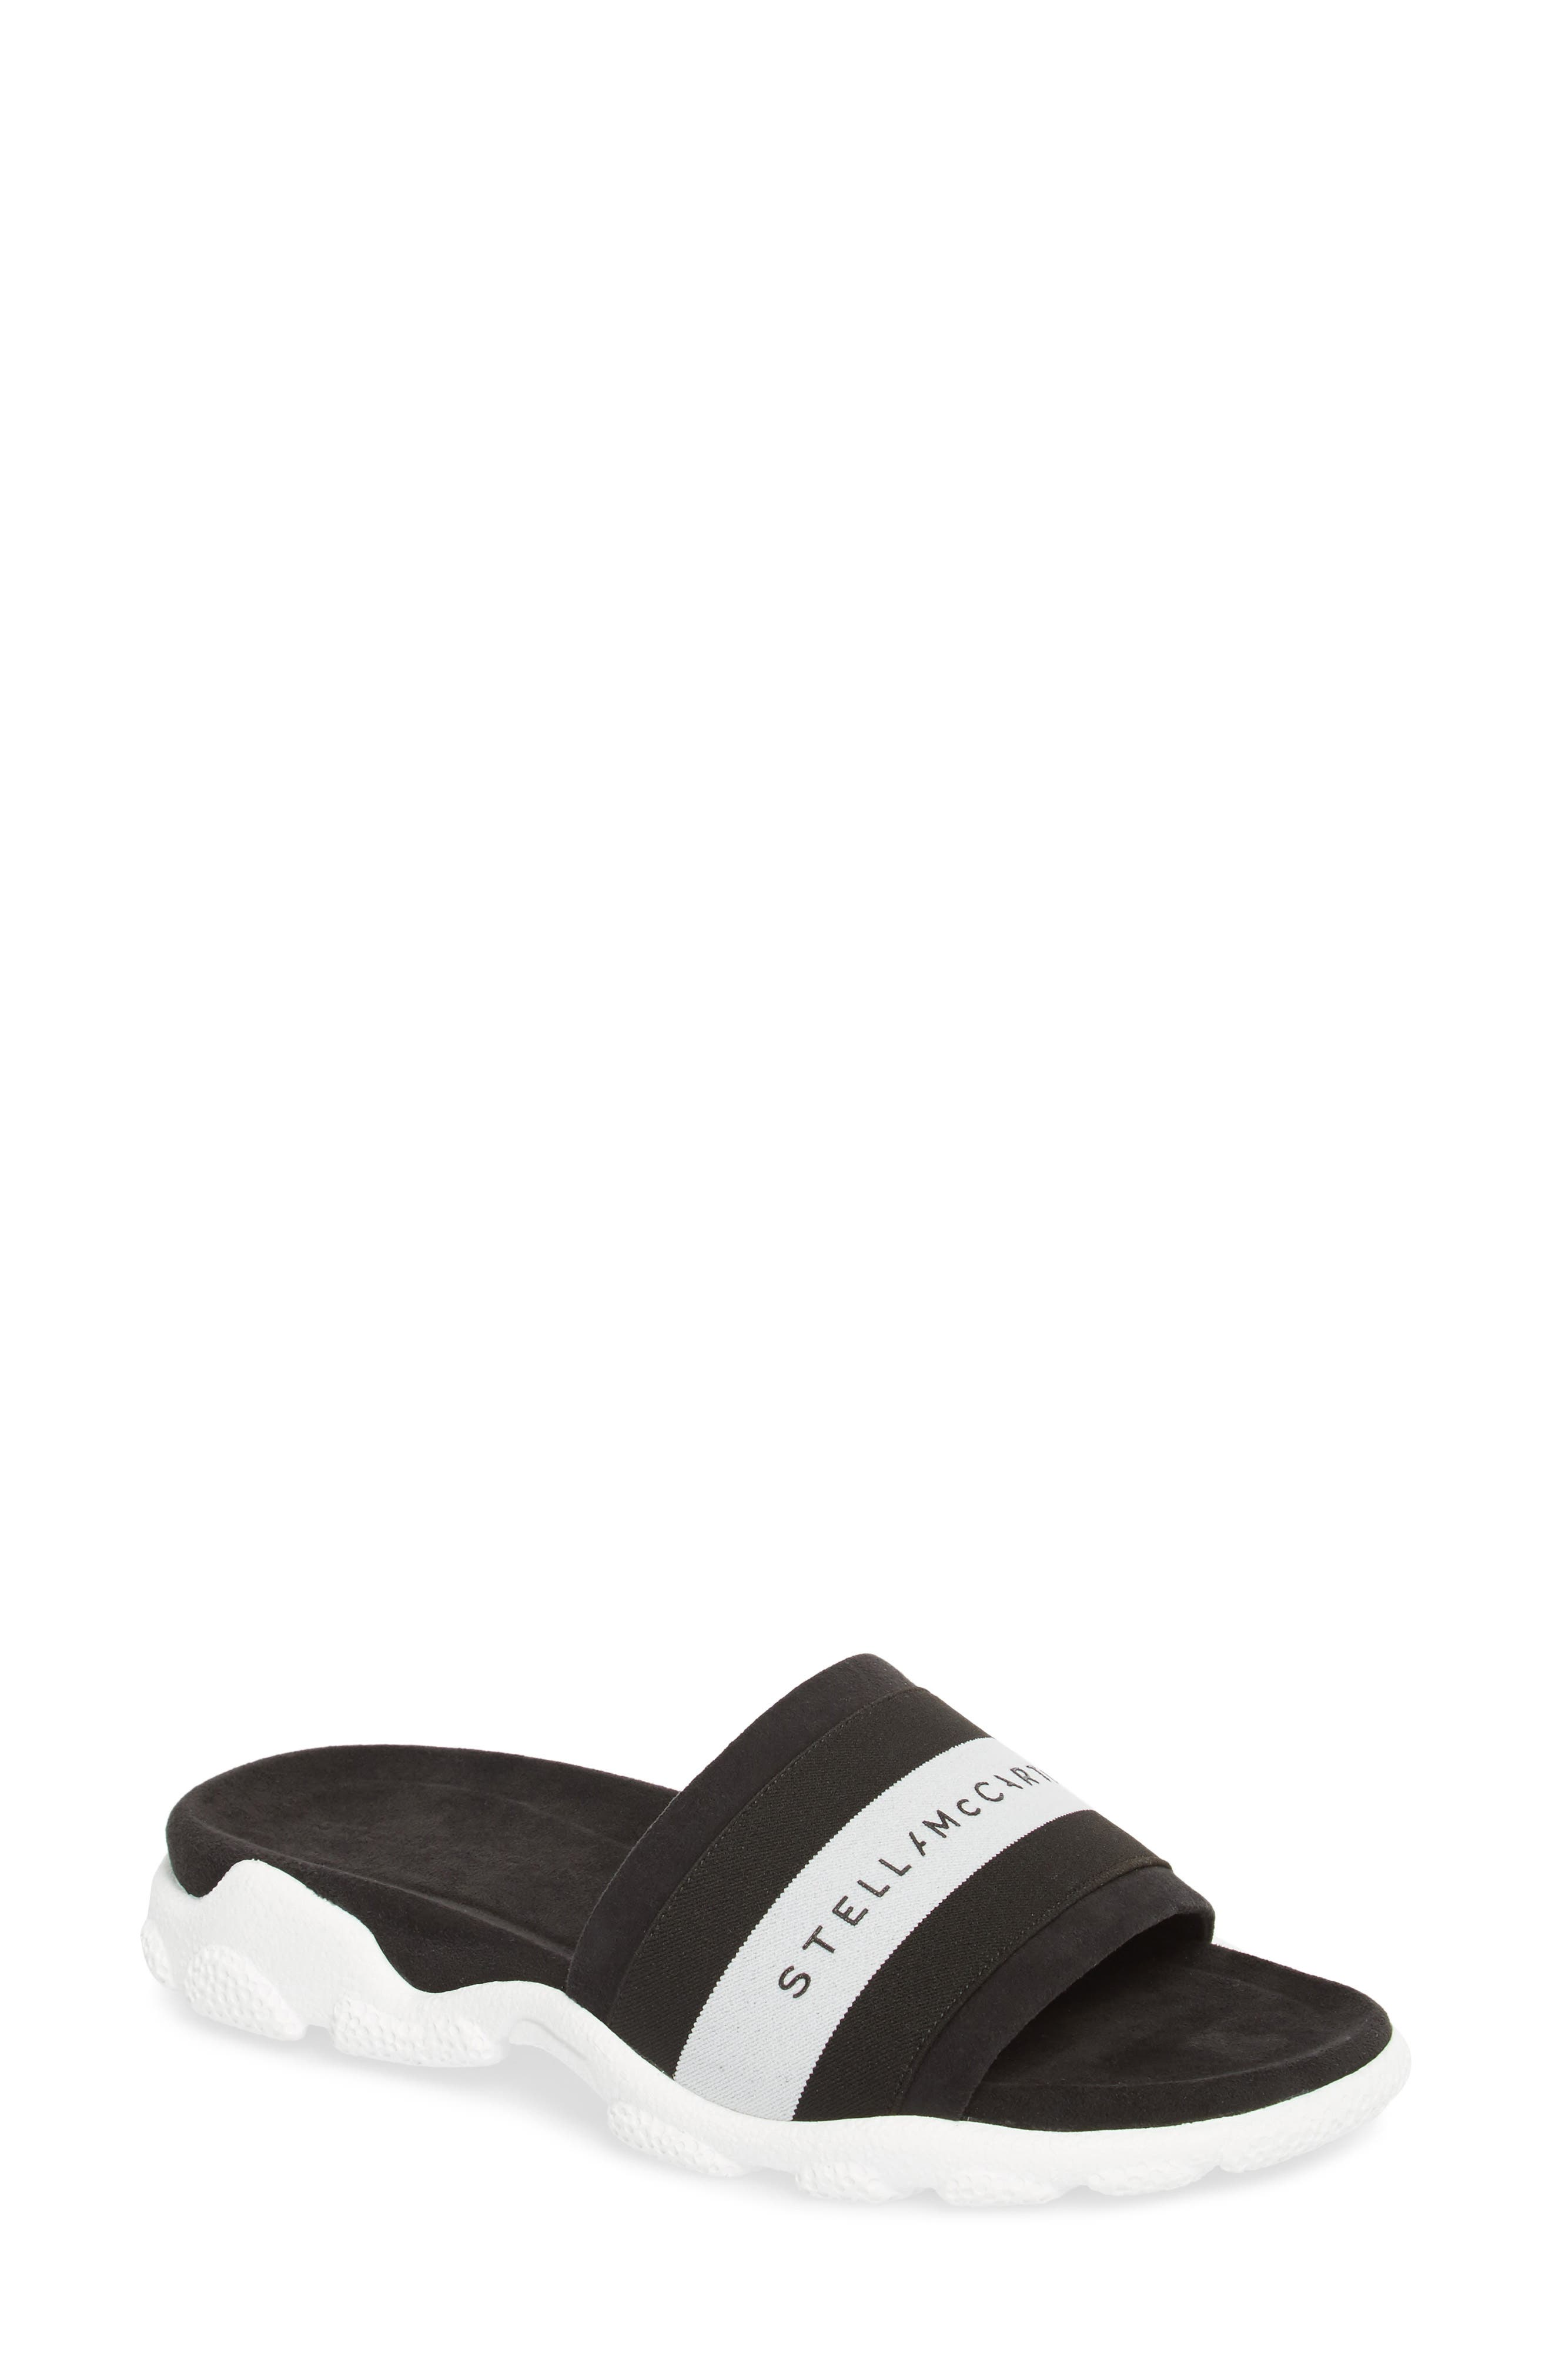 Stella McCartney Slide Sandal (Women)